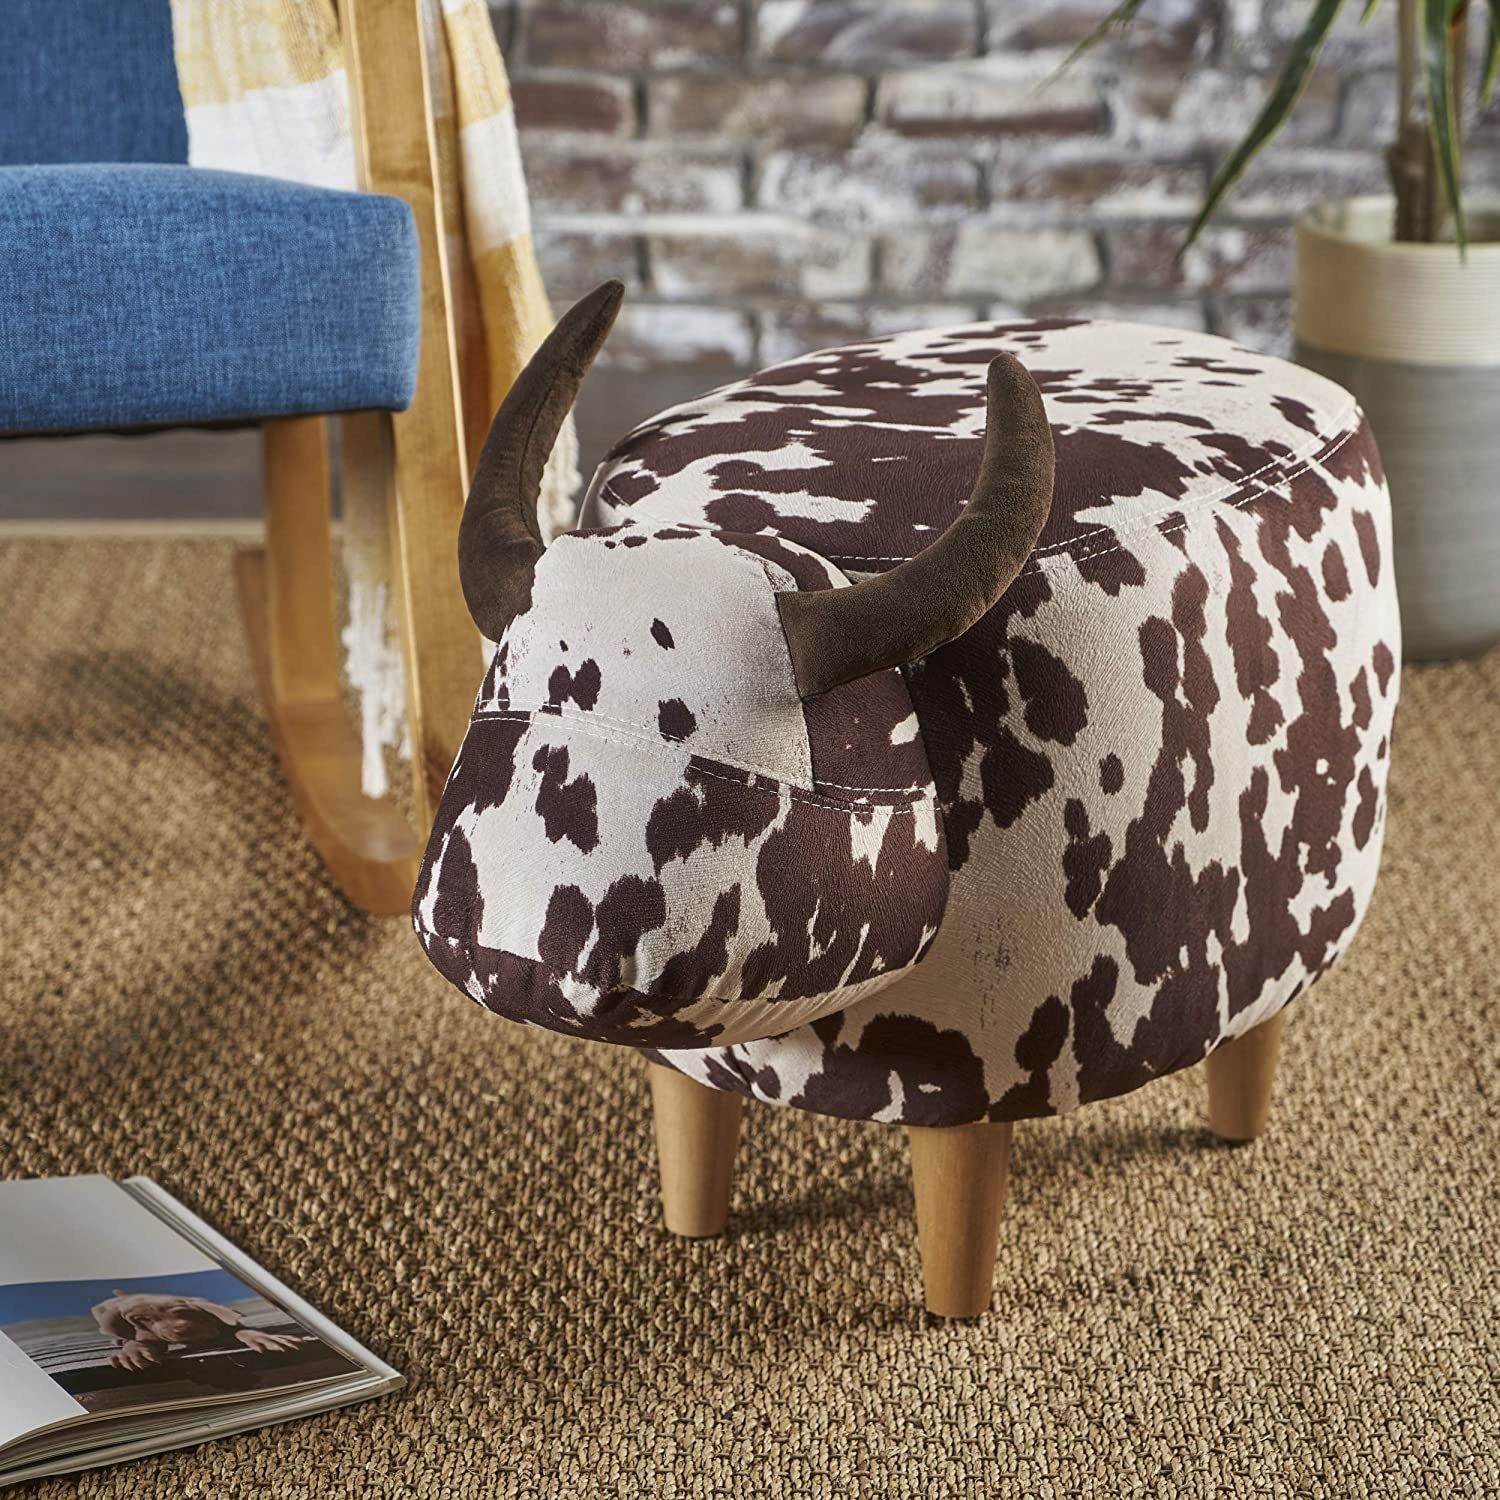 the cow-print ottoman which has four wooden legs and two upholstered horns